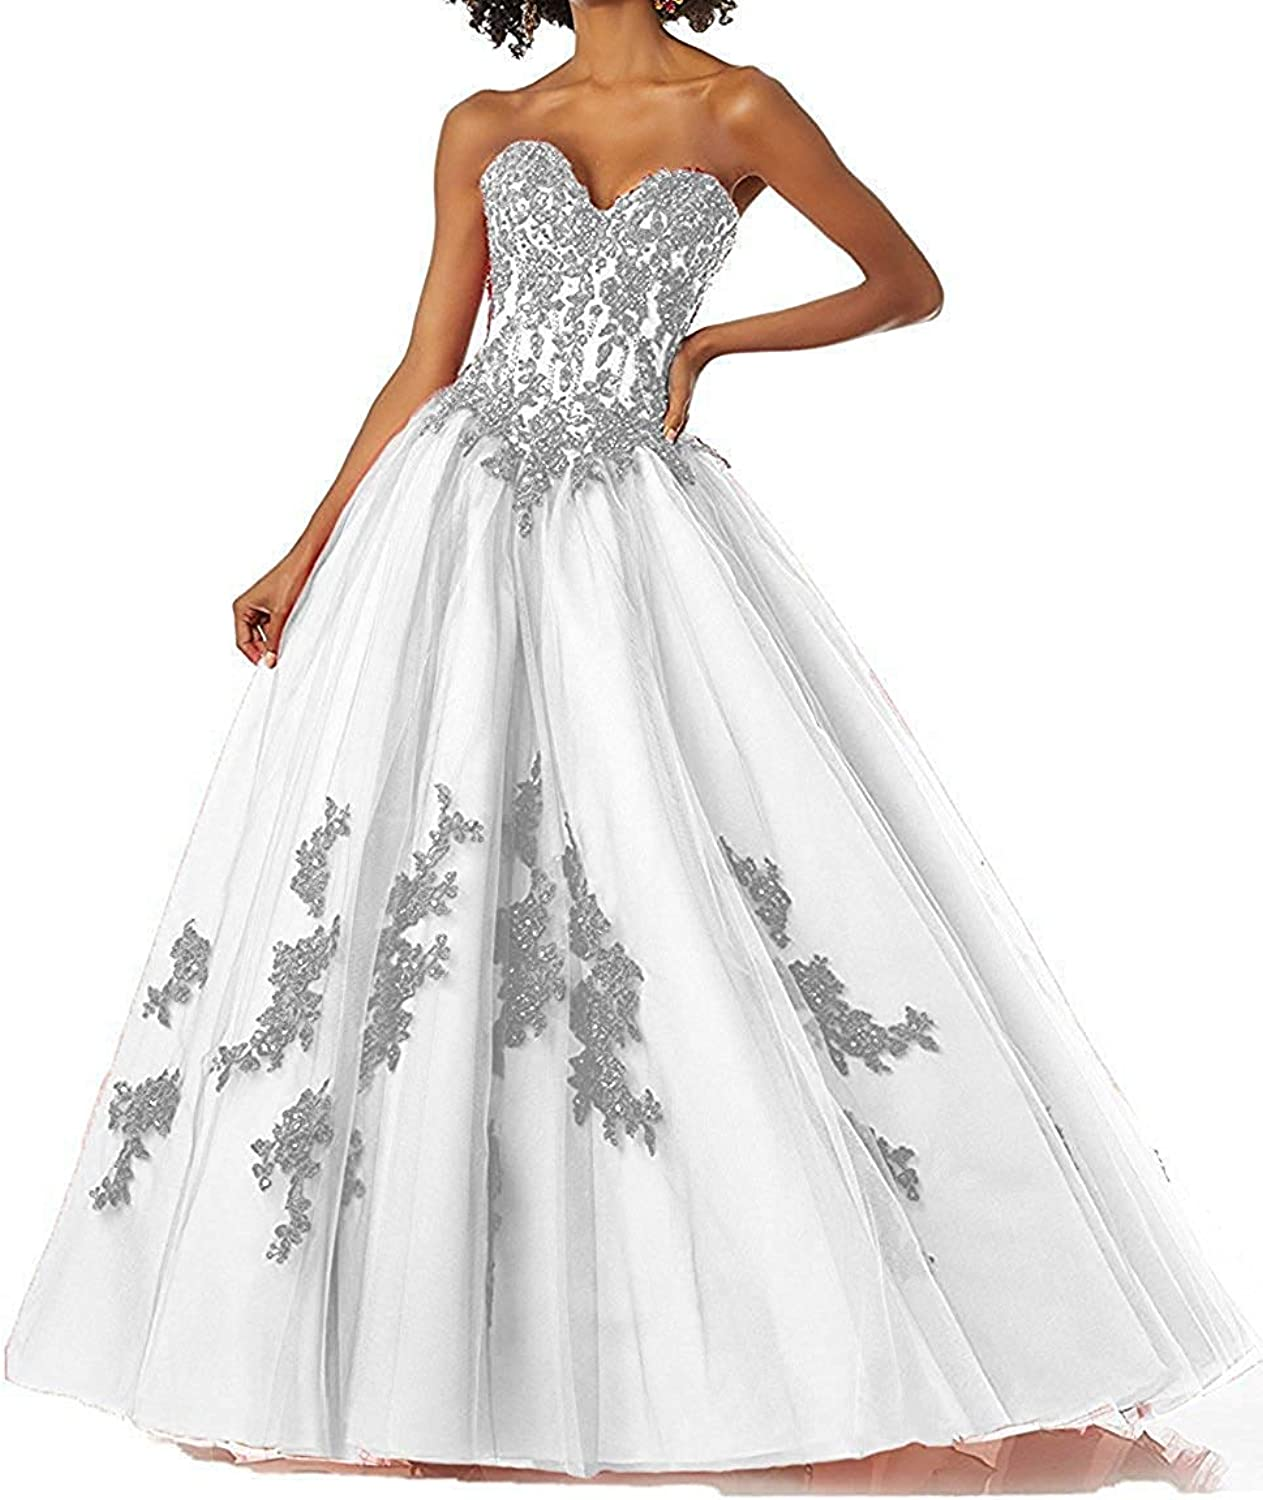 WZW Women's Long Beaded Applique Strapless Quinceanera Dresses Tulle Prom Party Formal Gowns